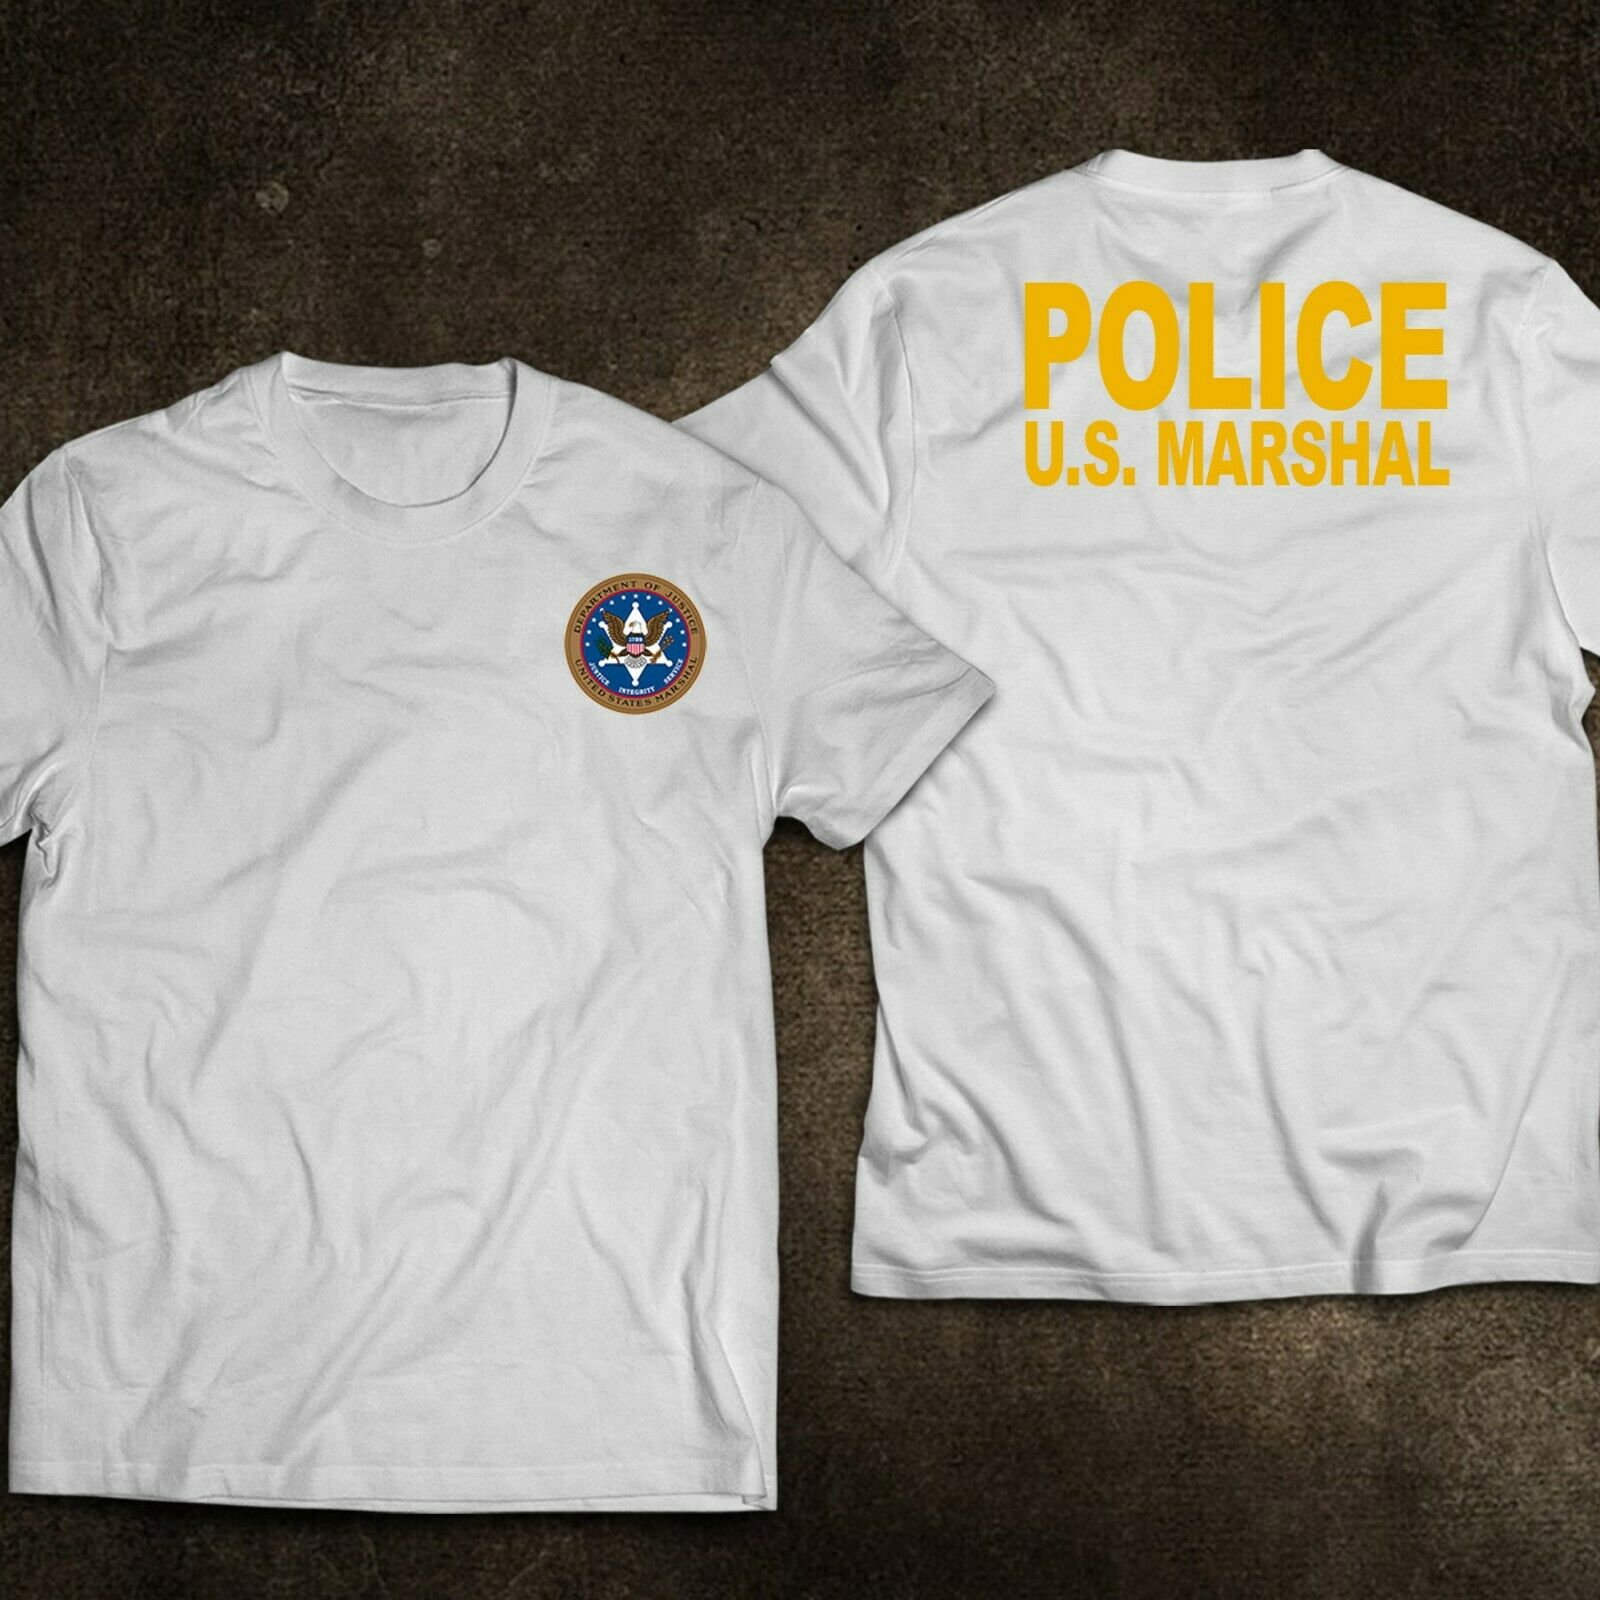 2019 Funny New Us United States Marshal Police Military Special Force Department T-Shirt Double Side Unisex Tee